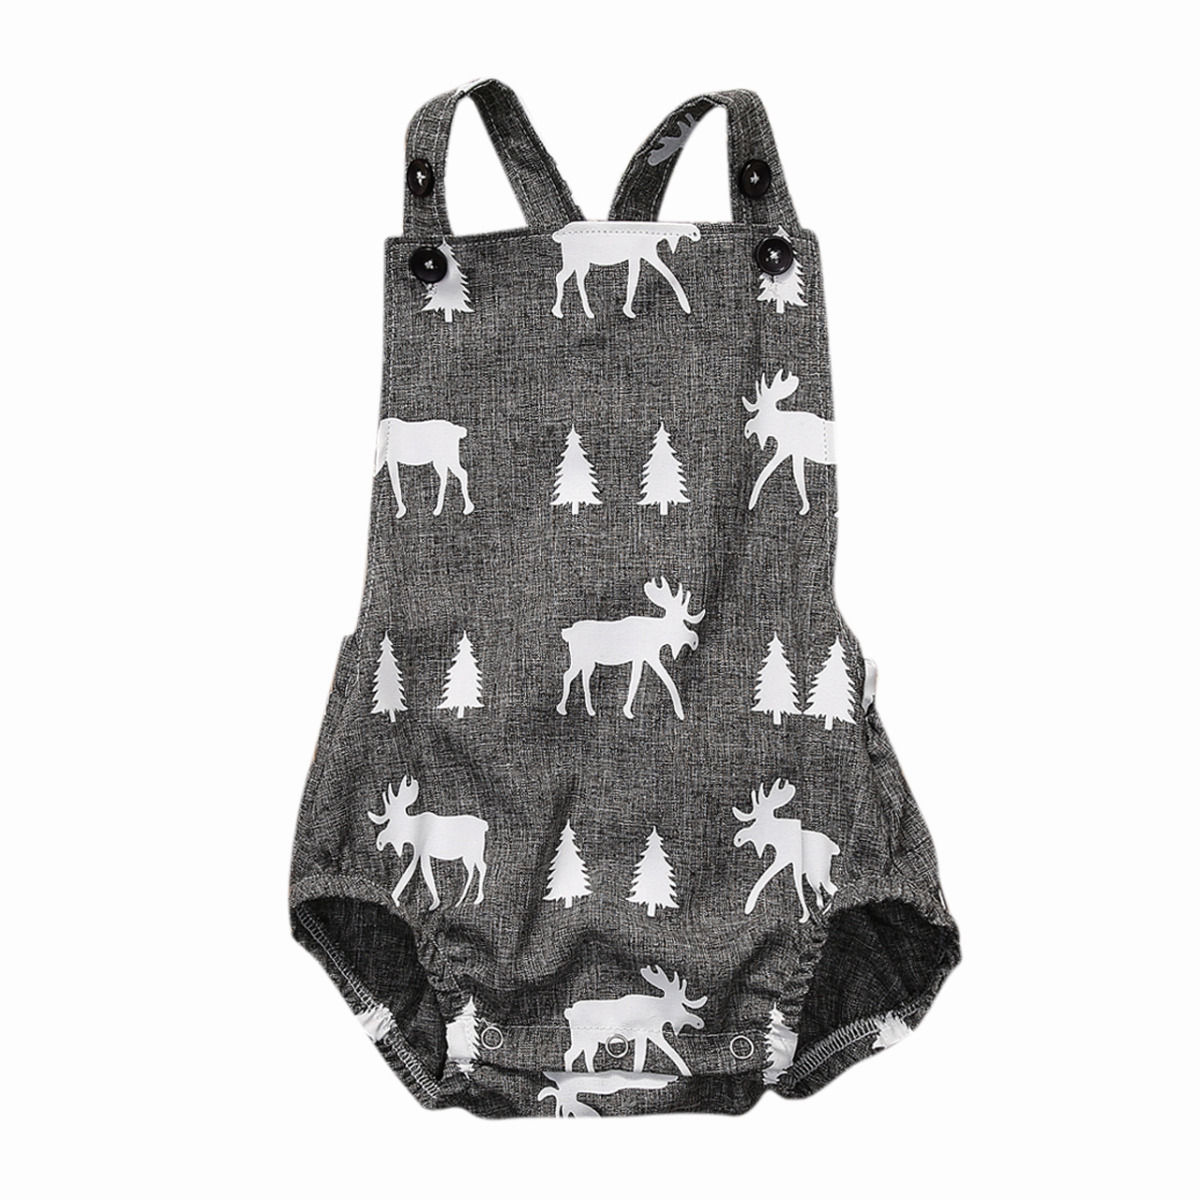 Cute Baby Romper Newborn Baby Boy Girl Fawn Clothes Sleeveless Deer Playsuit Romper Jumpsuit Outfit Sunsuit 0-2Y lowepro primus aw black